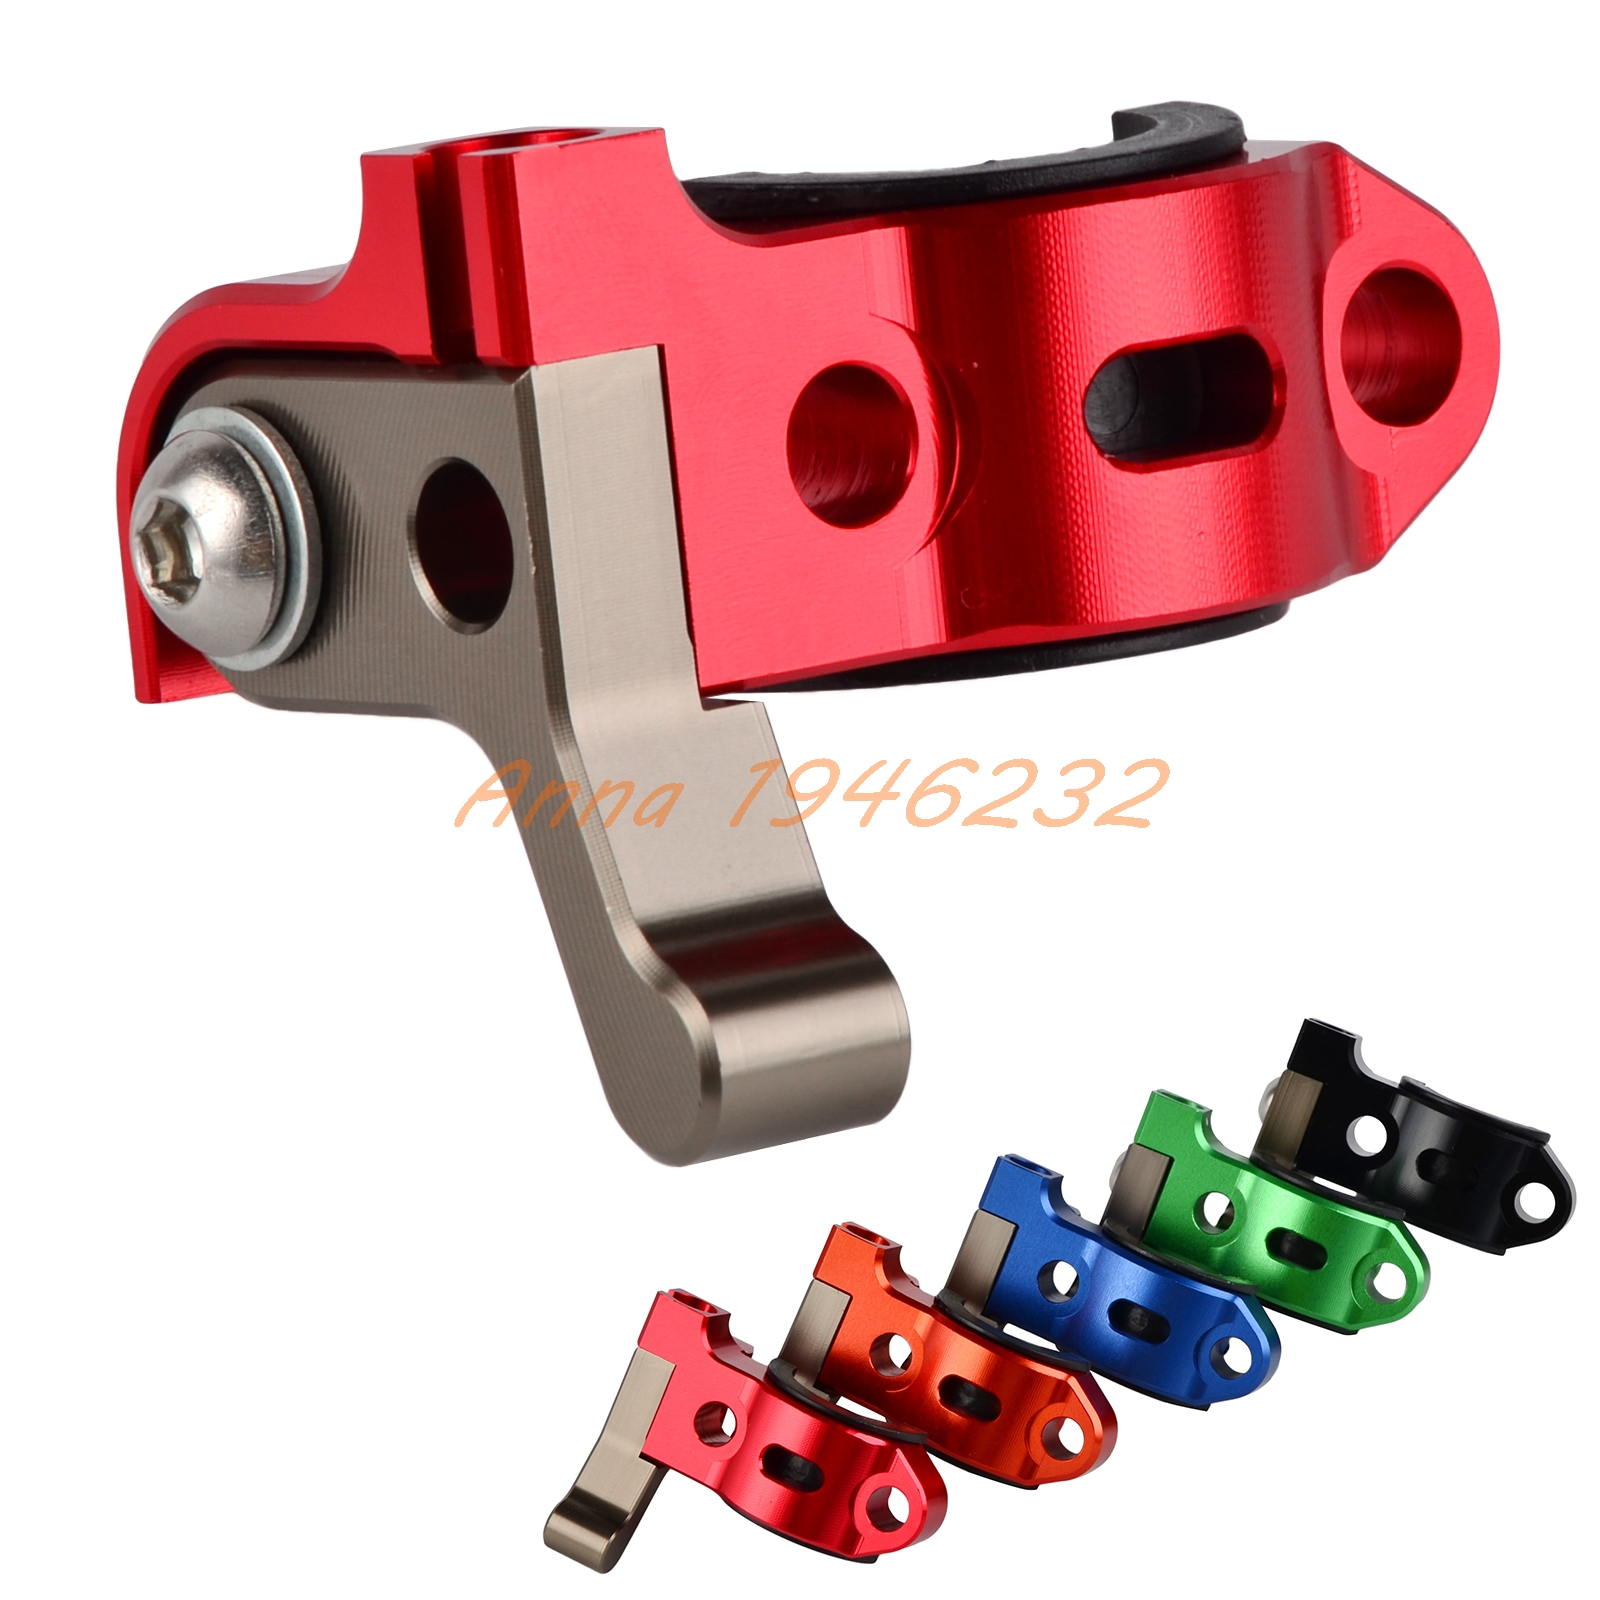 Rotating Bar Clamp Hot Start Lever For Honda CR 125 250 500 80 85R CRF150F/R CRF230F 250R/X 450R/X XR250R/L XR 400 600R XR650R/L mitsubishi 100% mds r v1 80 mds r v1 80